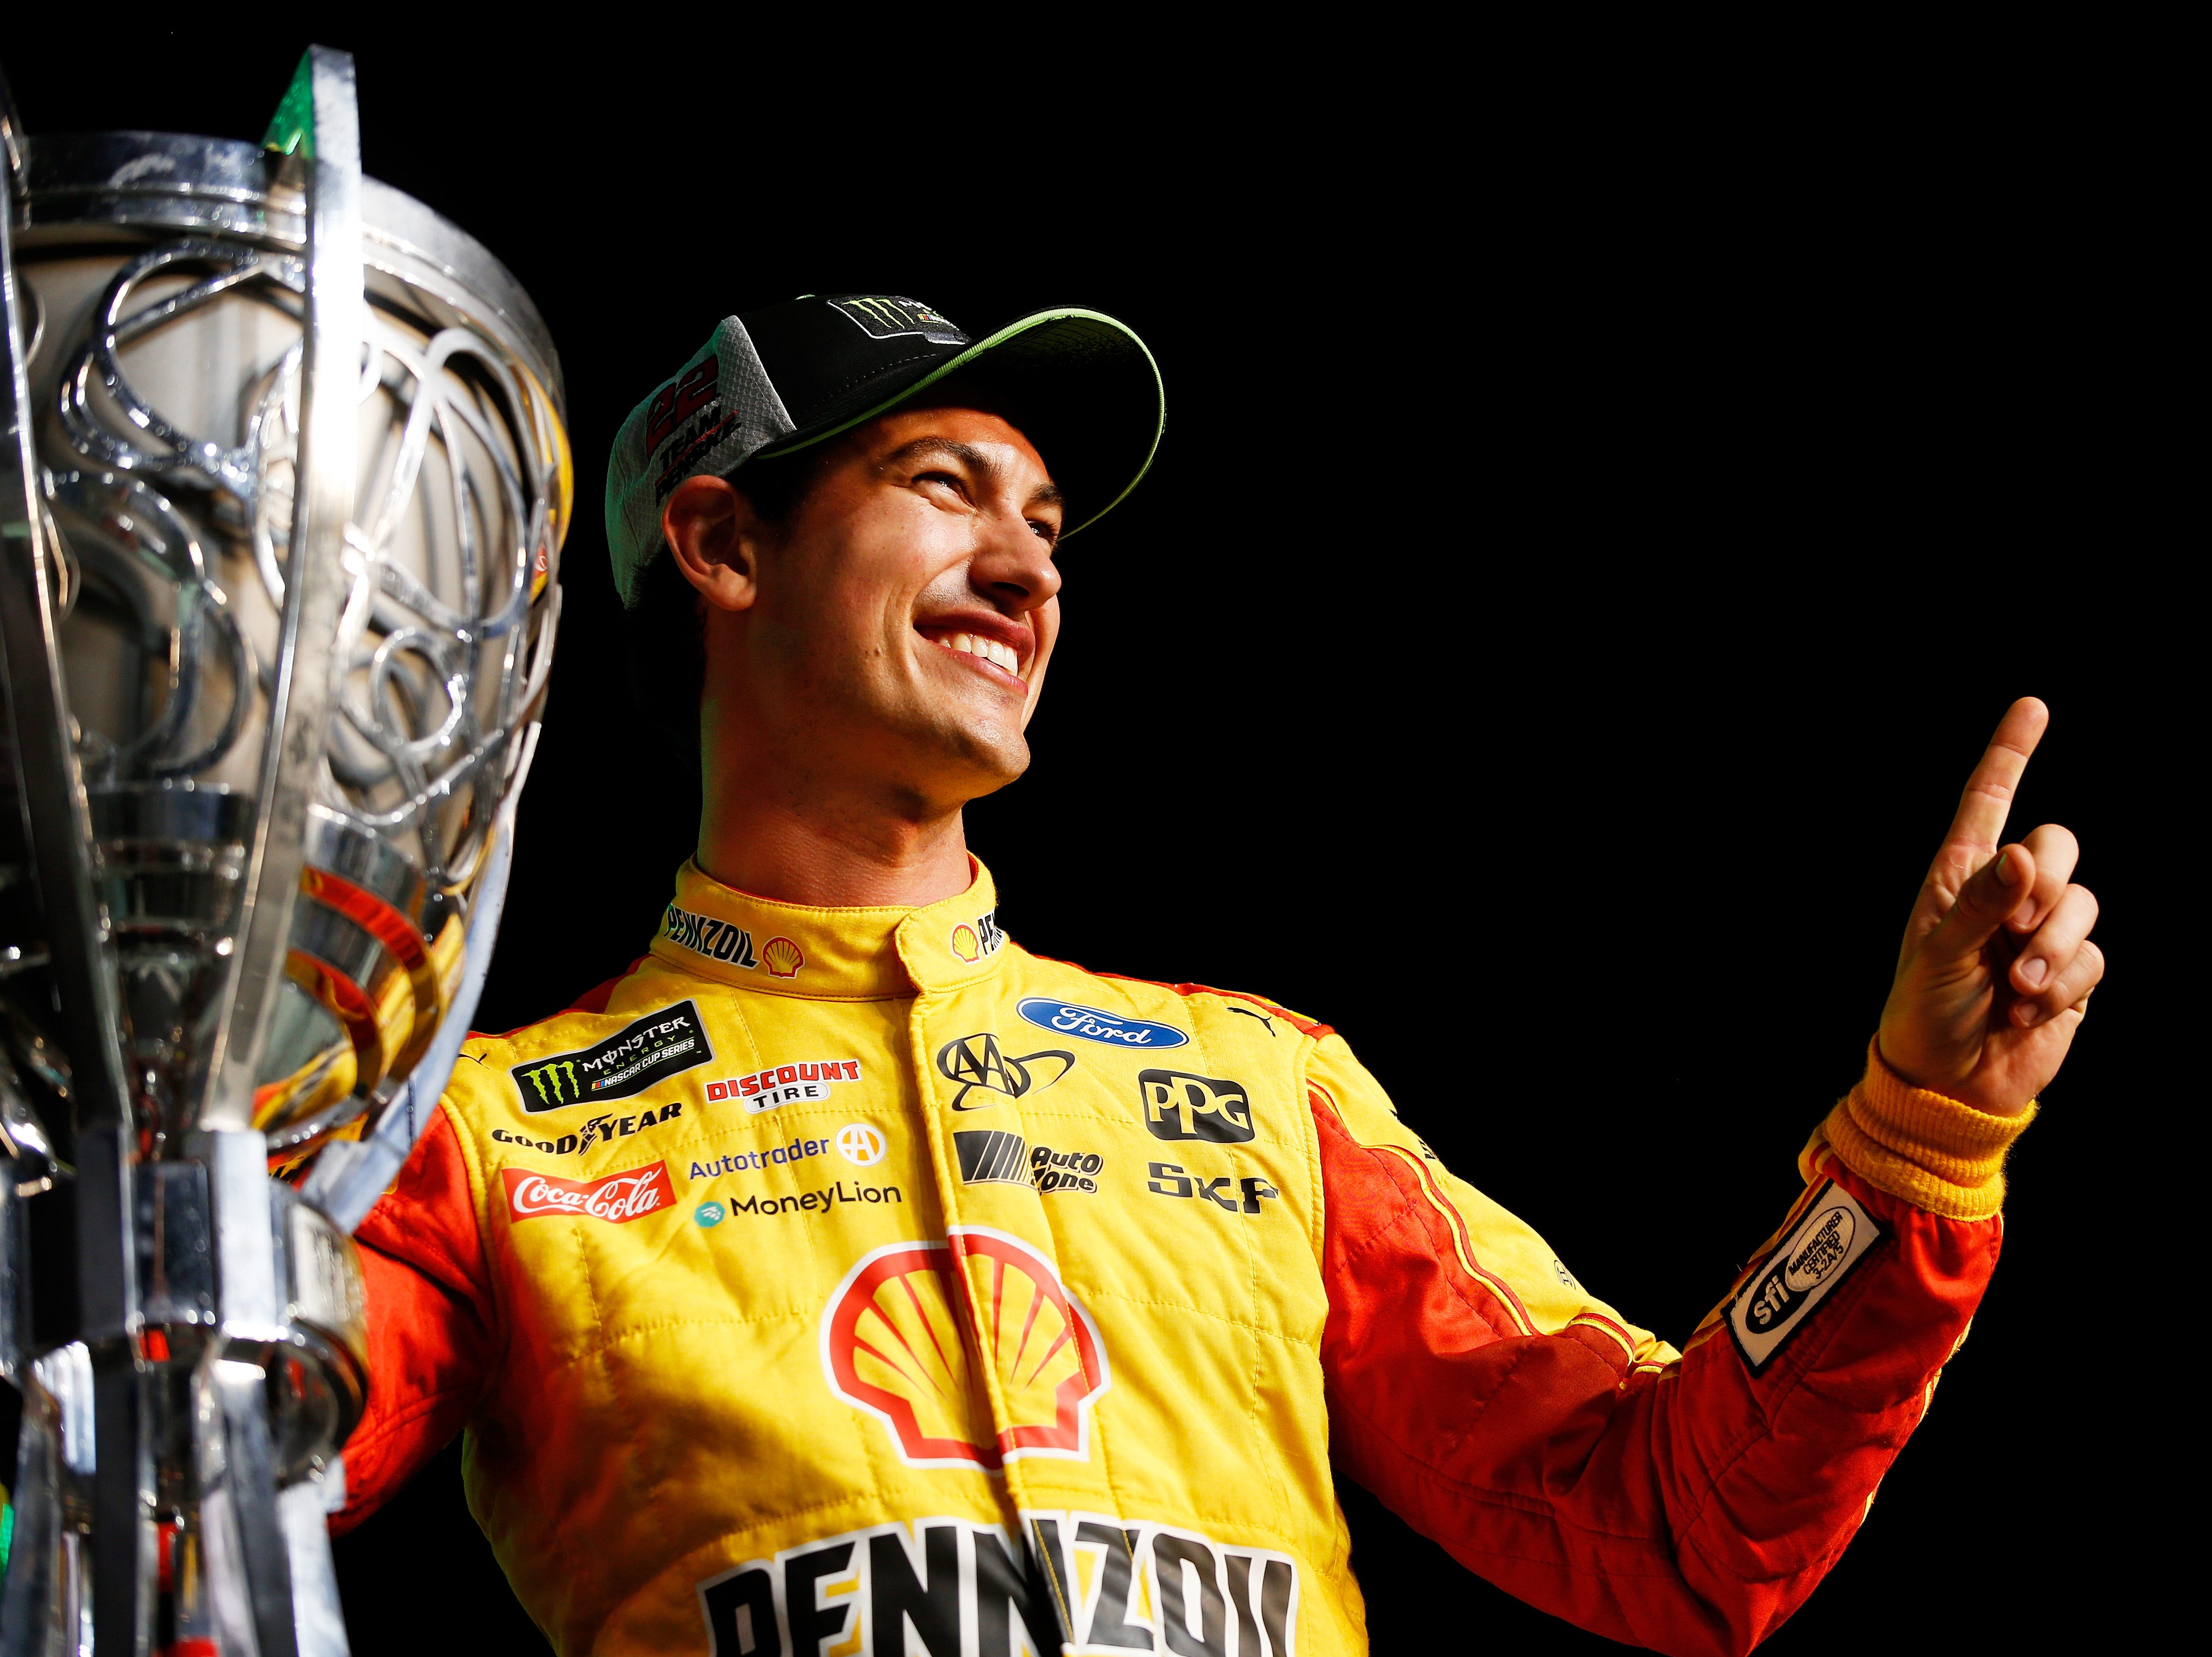 'He's the guy': Faith in Ford, Logano pays off for Penske